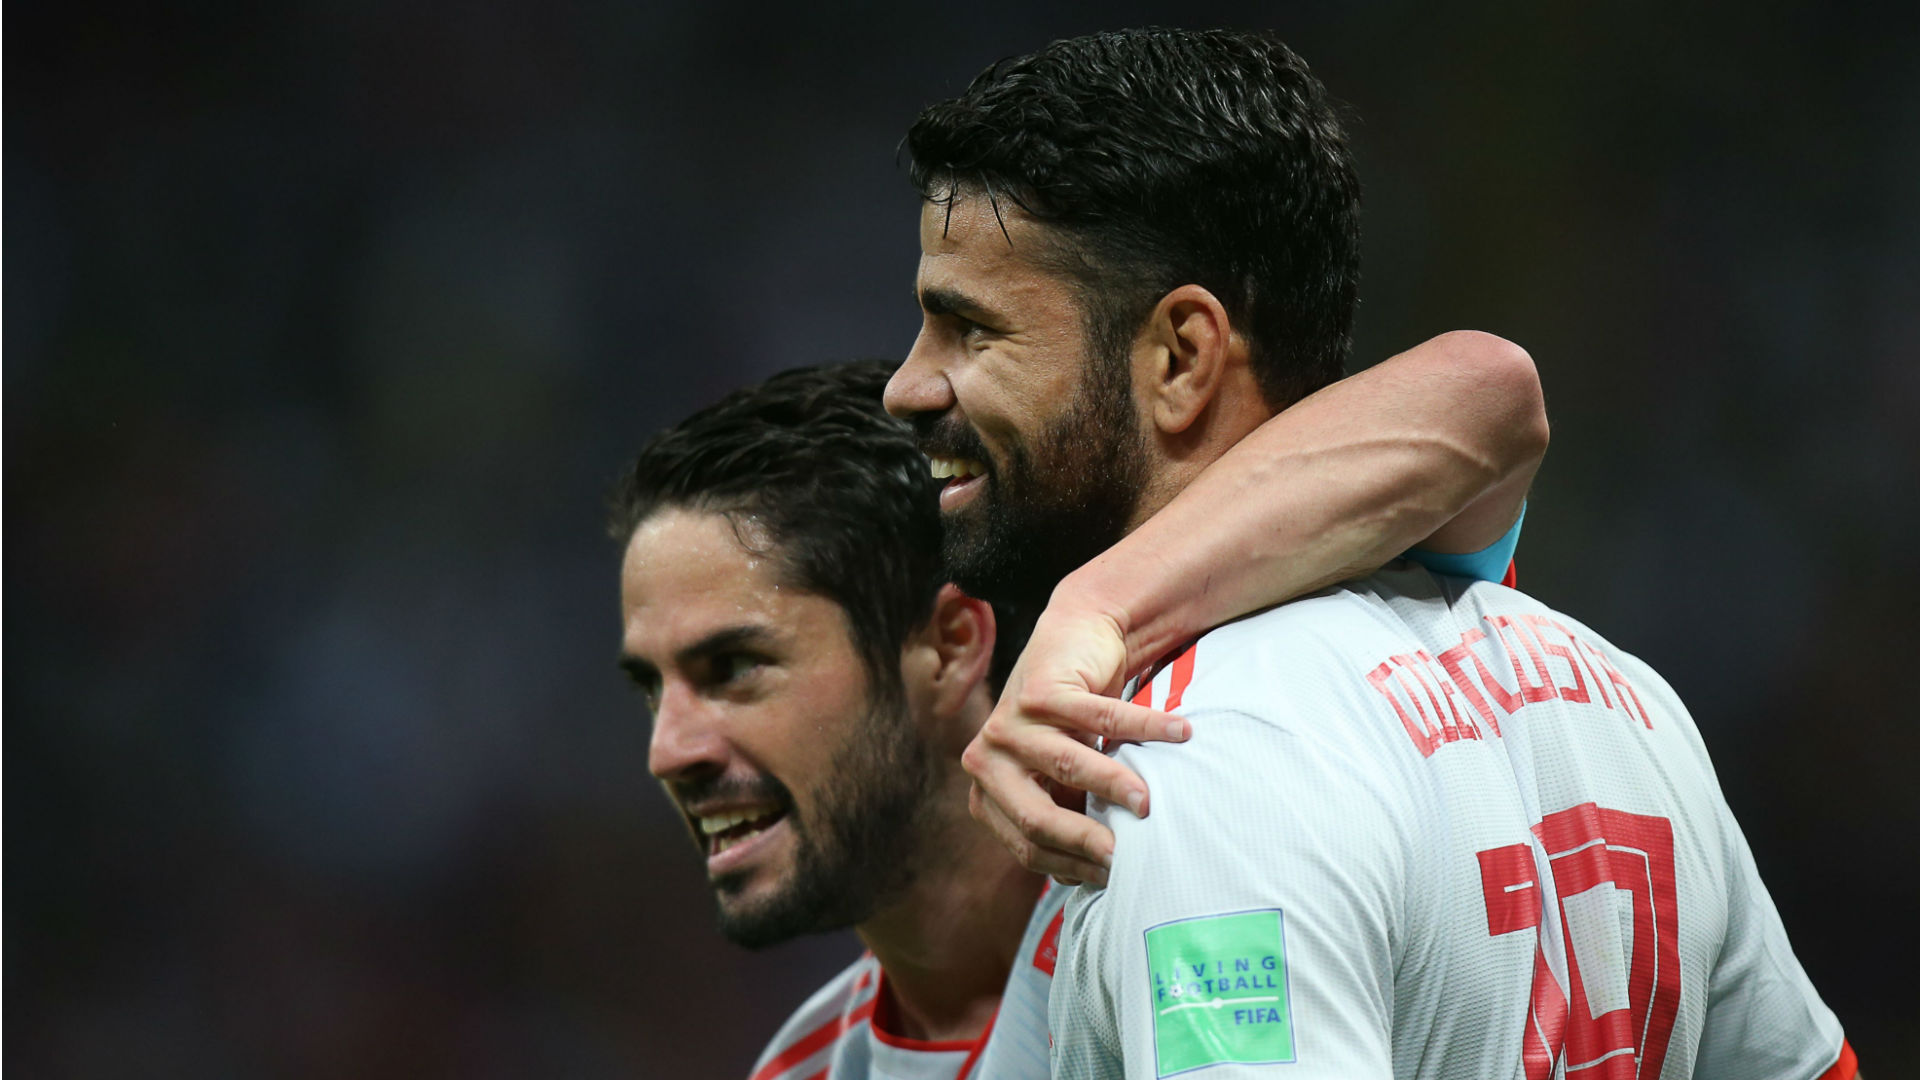 Spain beat Iran 1-0 on Costa's third goal